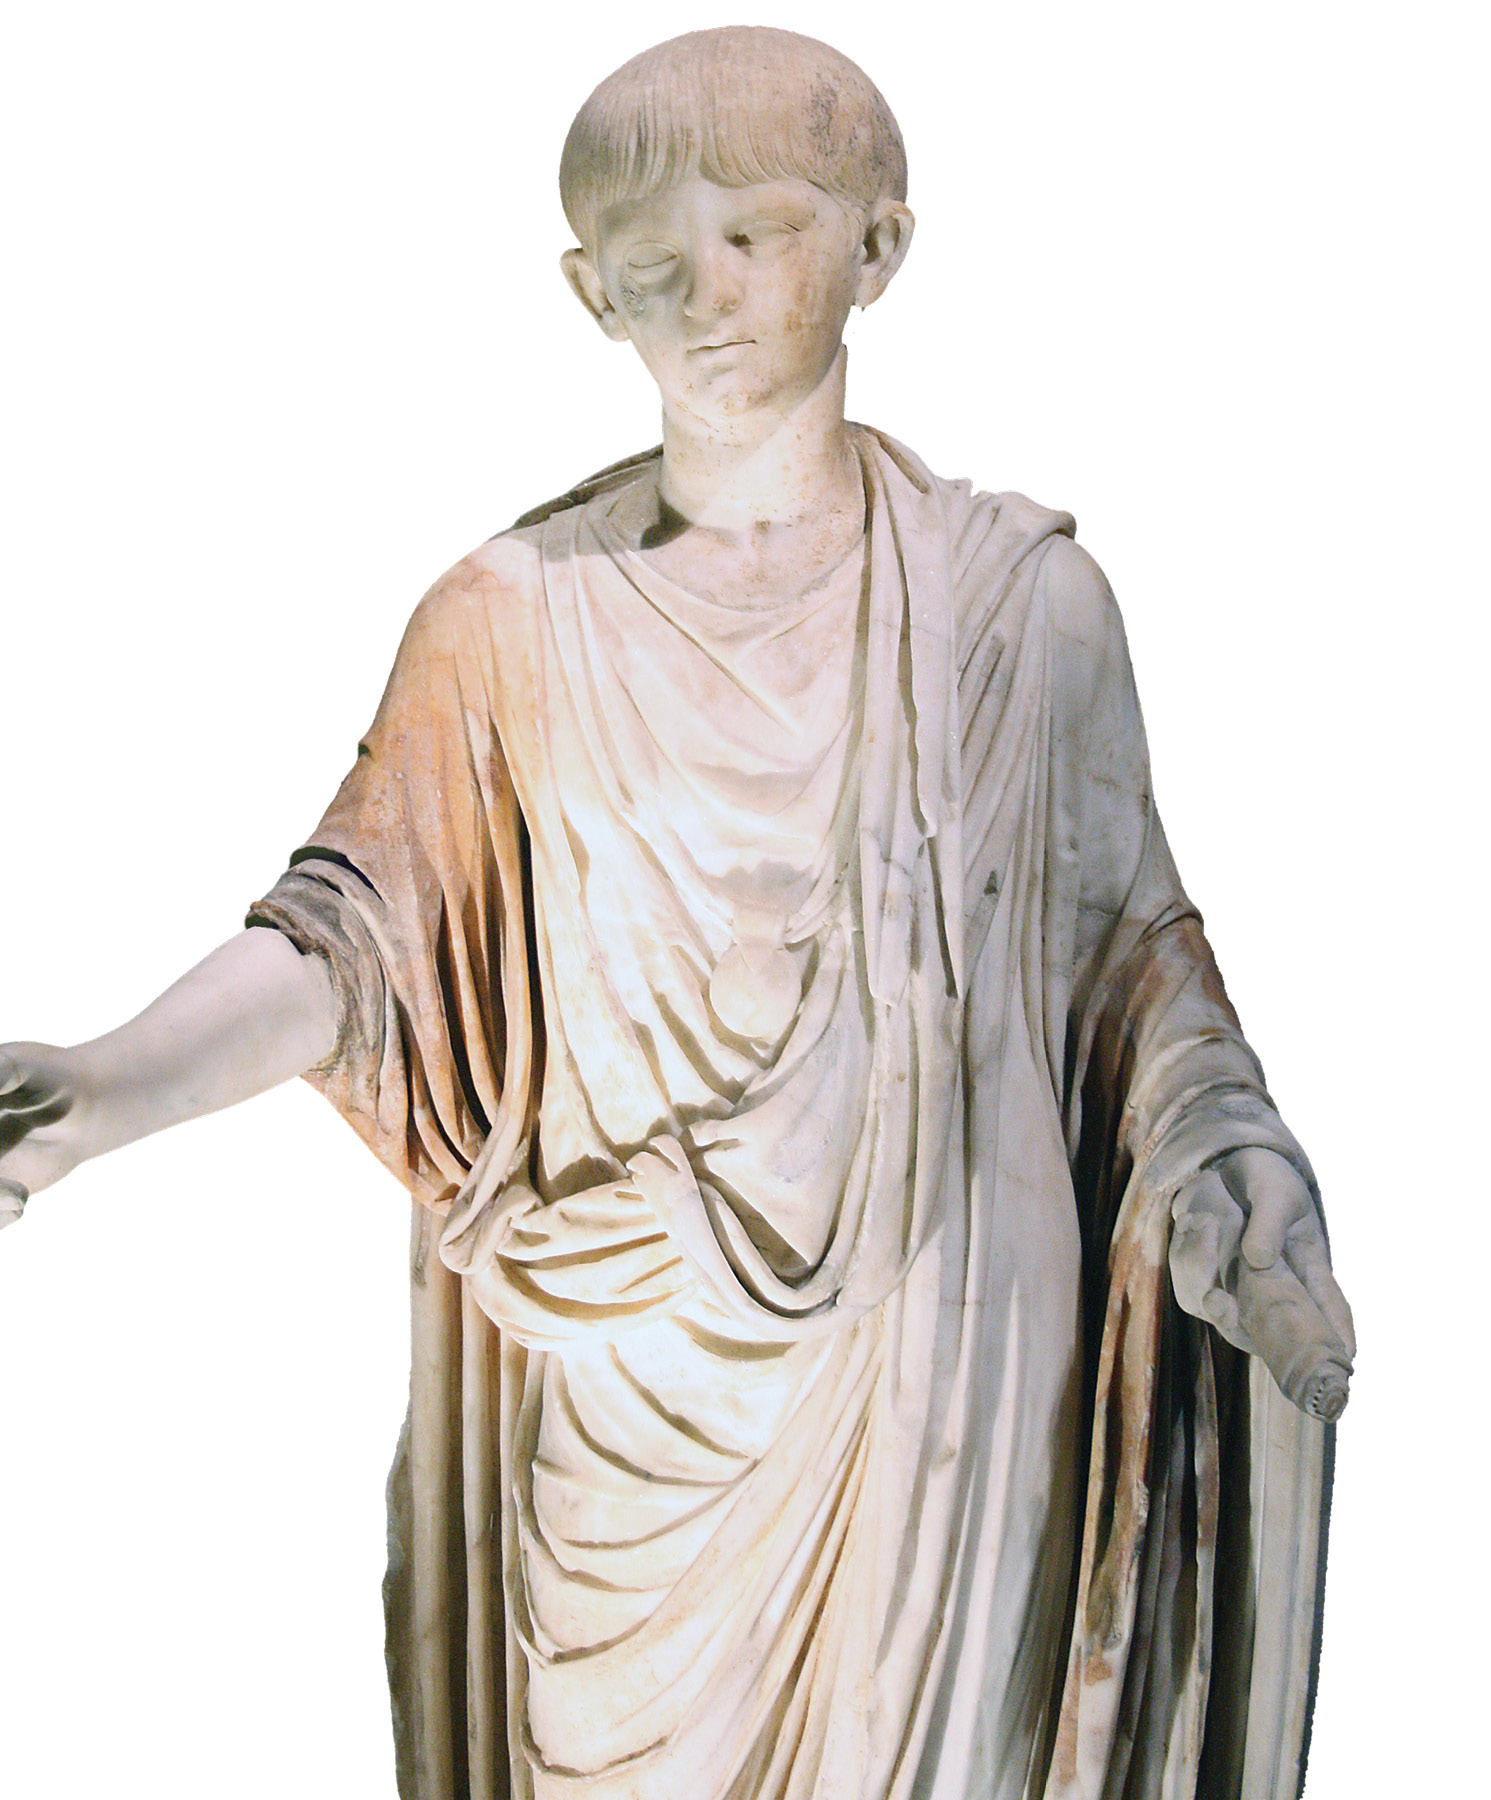 right The boy who would be emperor. This statue, standing 1.4m tall, shows Nero aged about 12 or 13, in AD 50-51. On his chest a bulla or amulet worn by freeborn male children is visible.